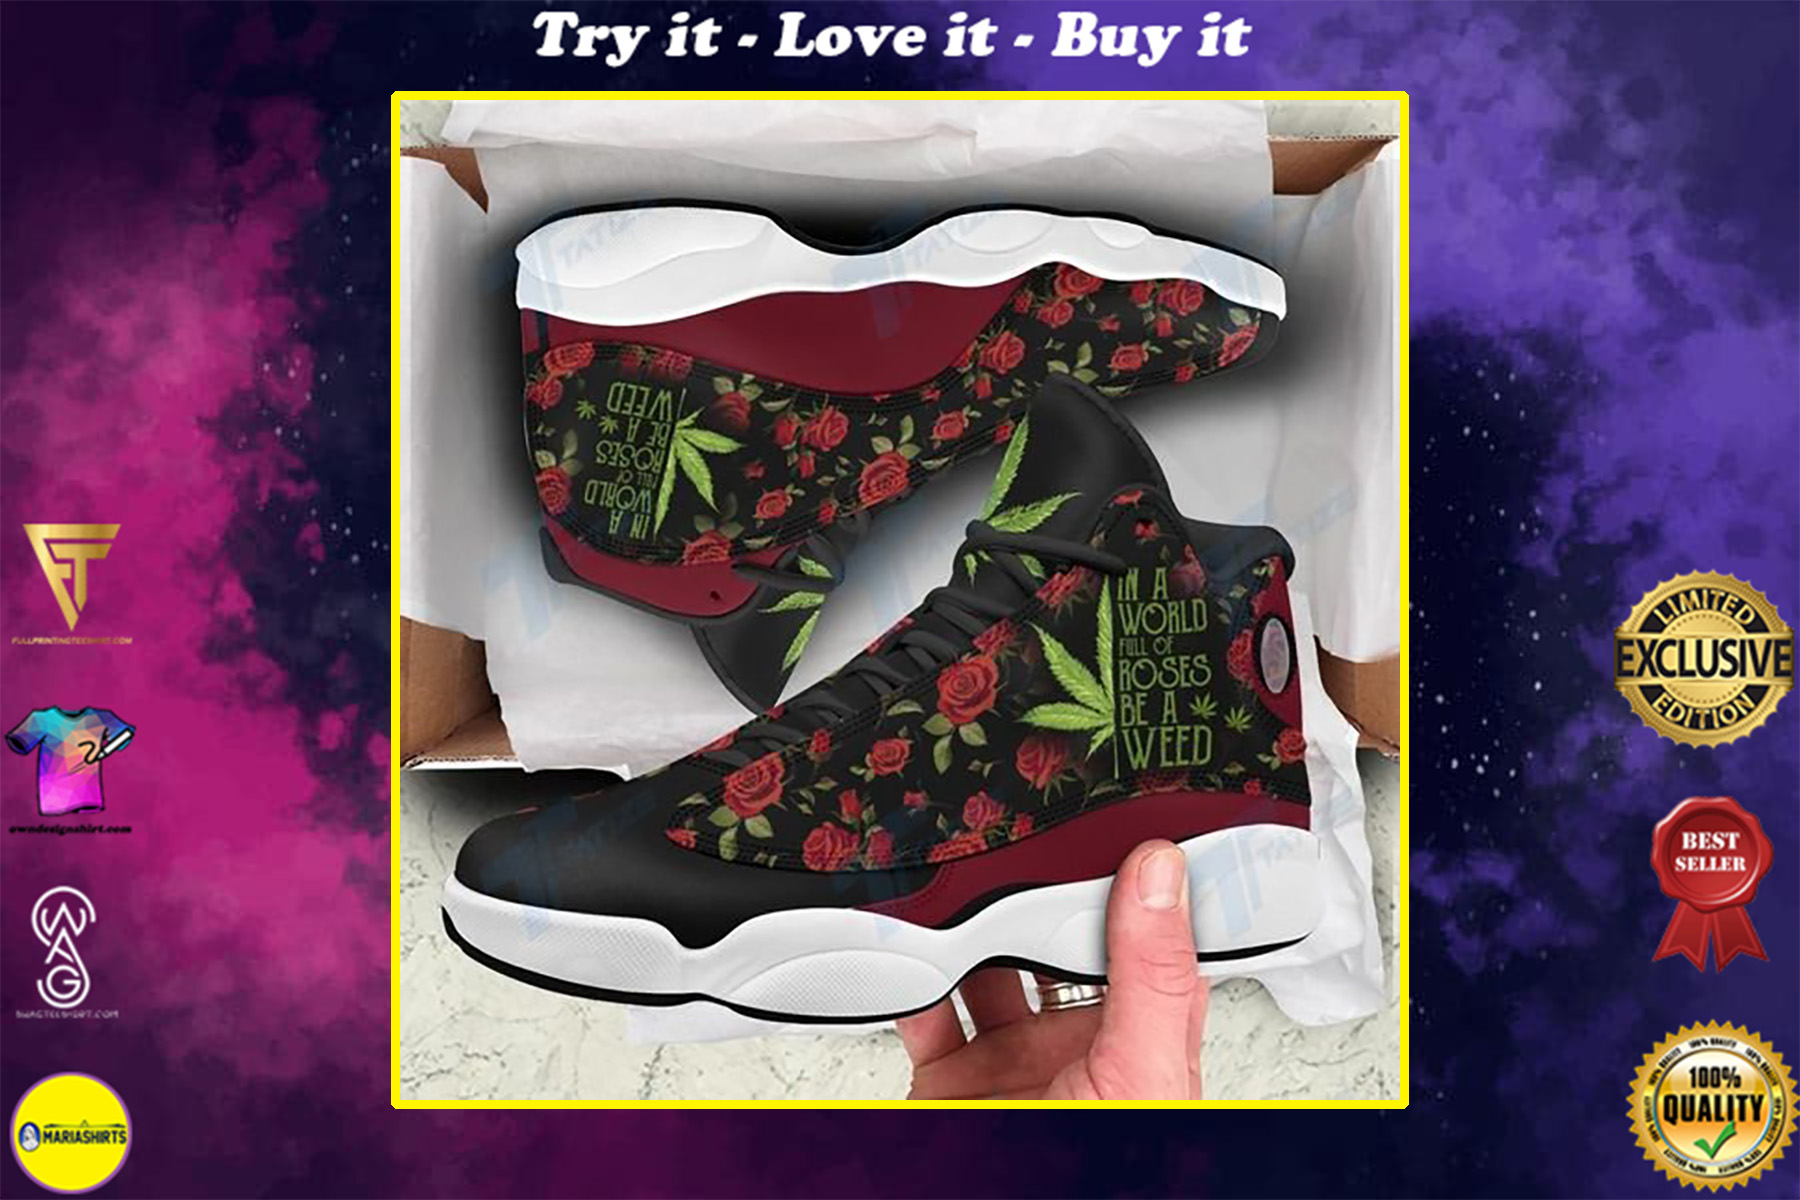 in a world full of rose be a weed all over printed air jordan 13 sneakers